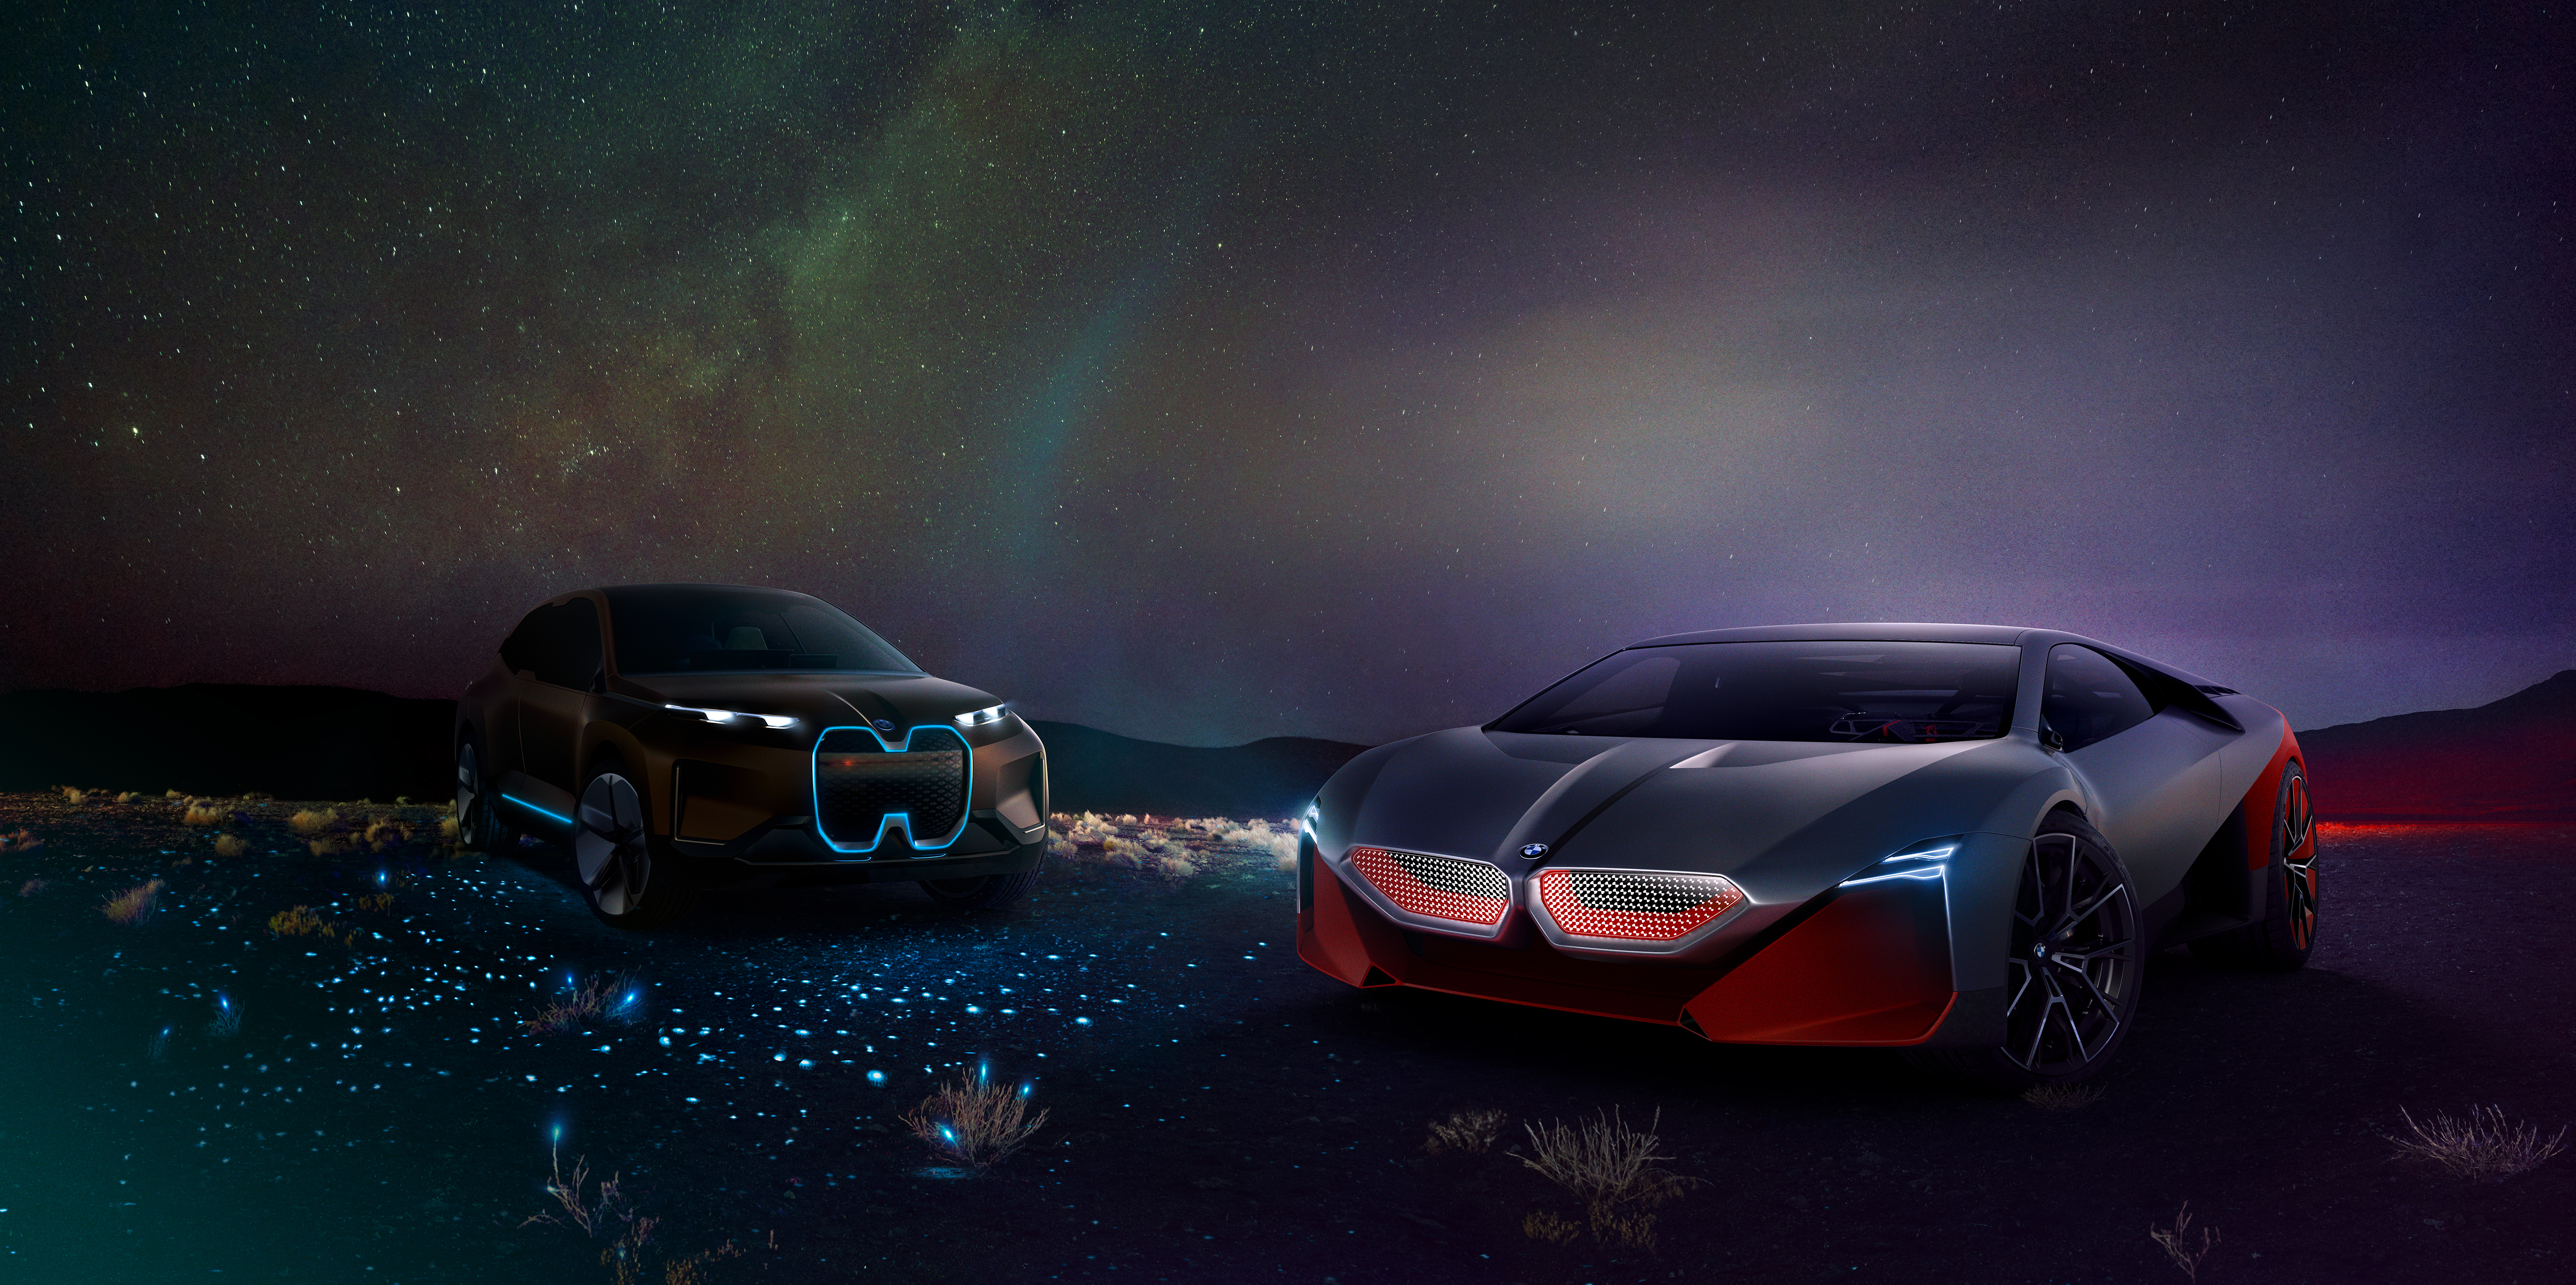 BMW Group - Designing for tomorrow